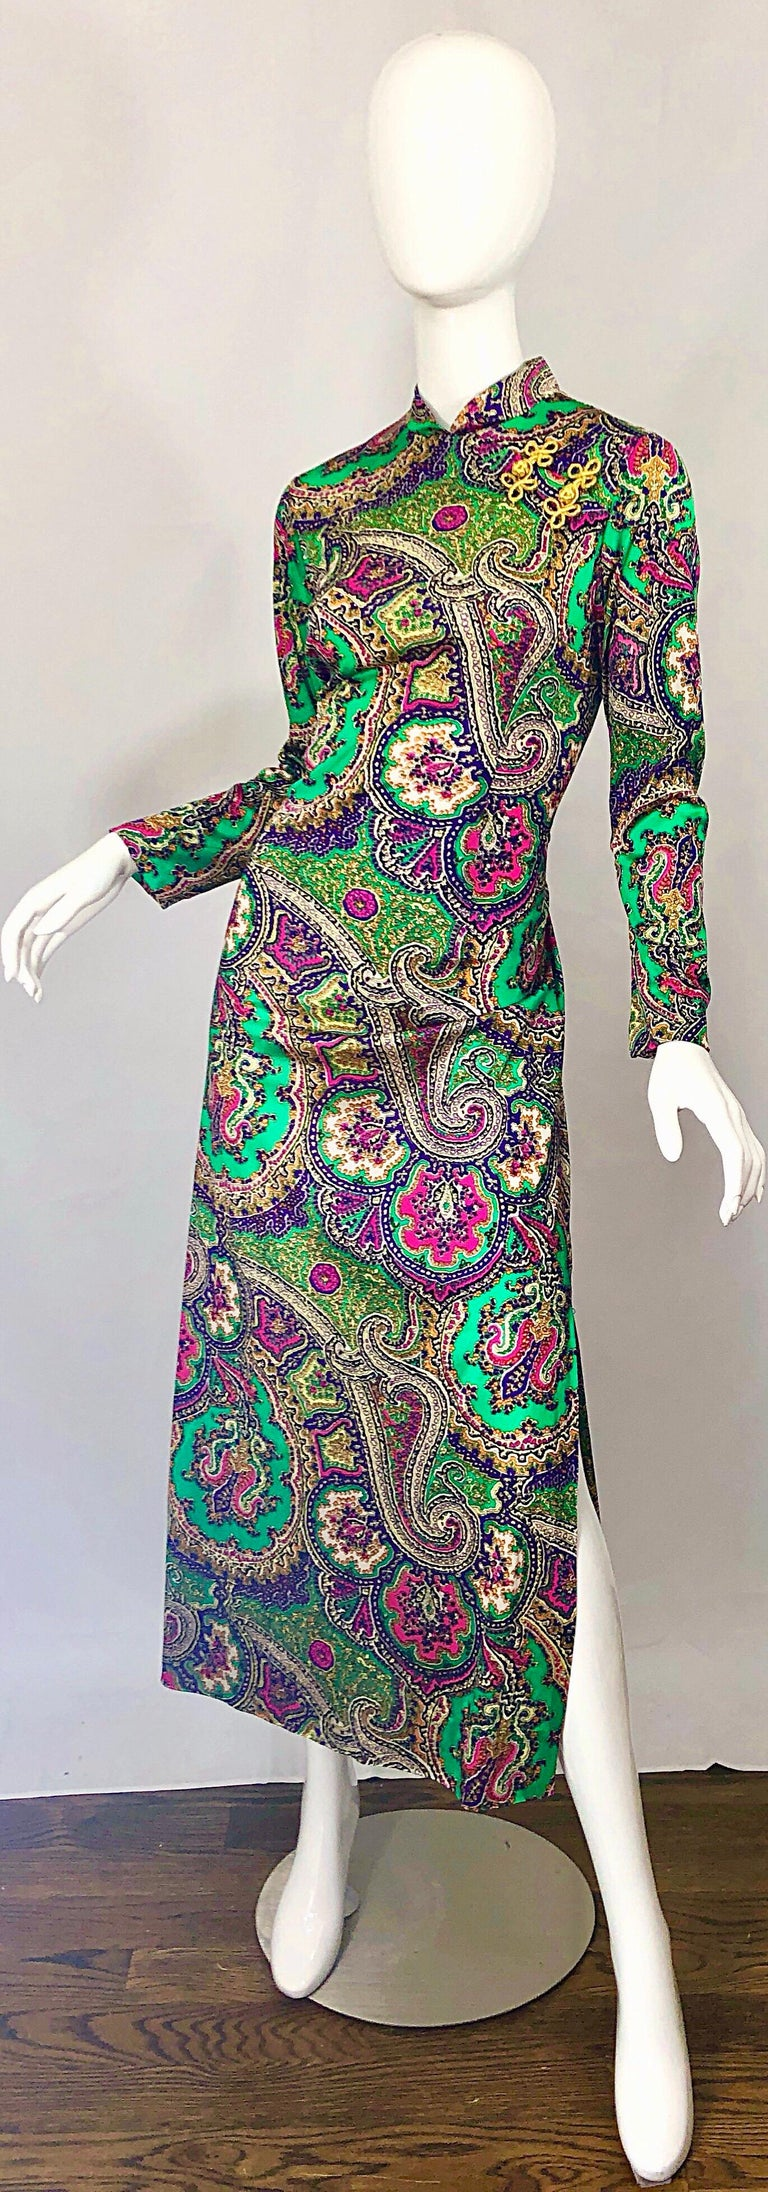 1970s Cheongsam Inspired Colorful Paisley Print Jersey Long Sleeve Maxi Dress In Excellent Condition For Sale In Chicago, IL